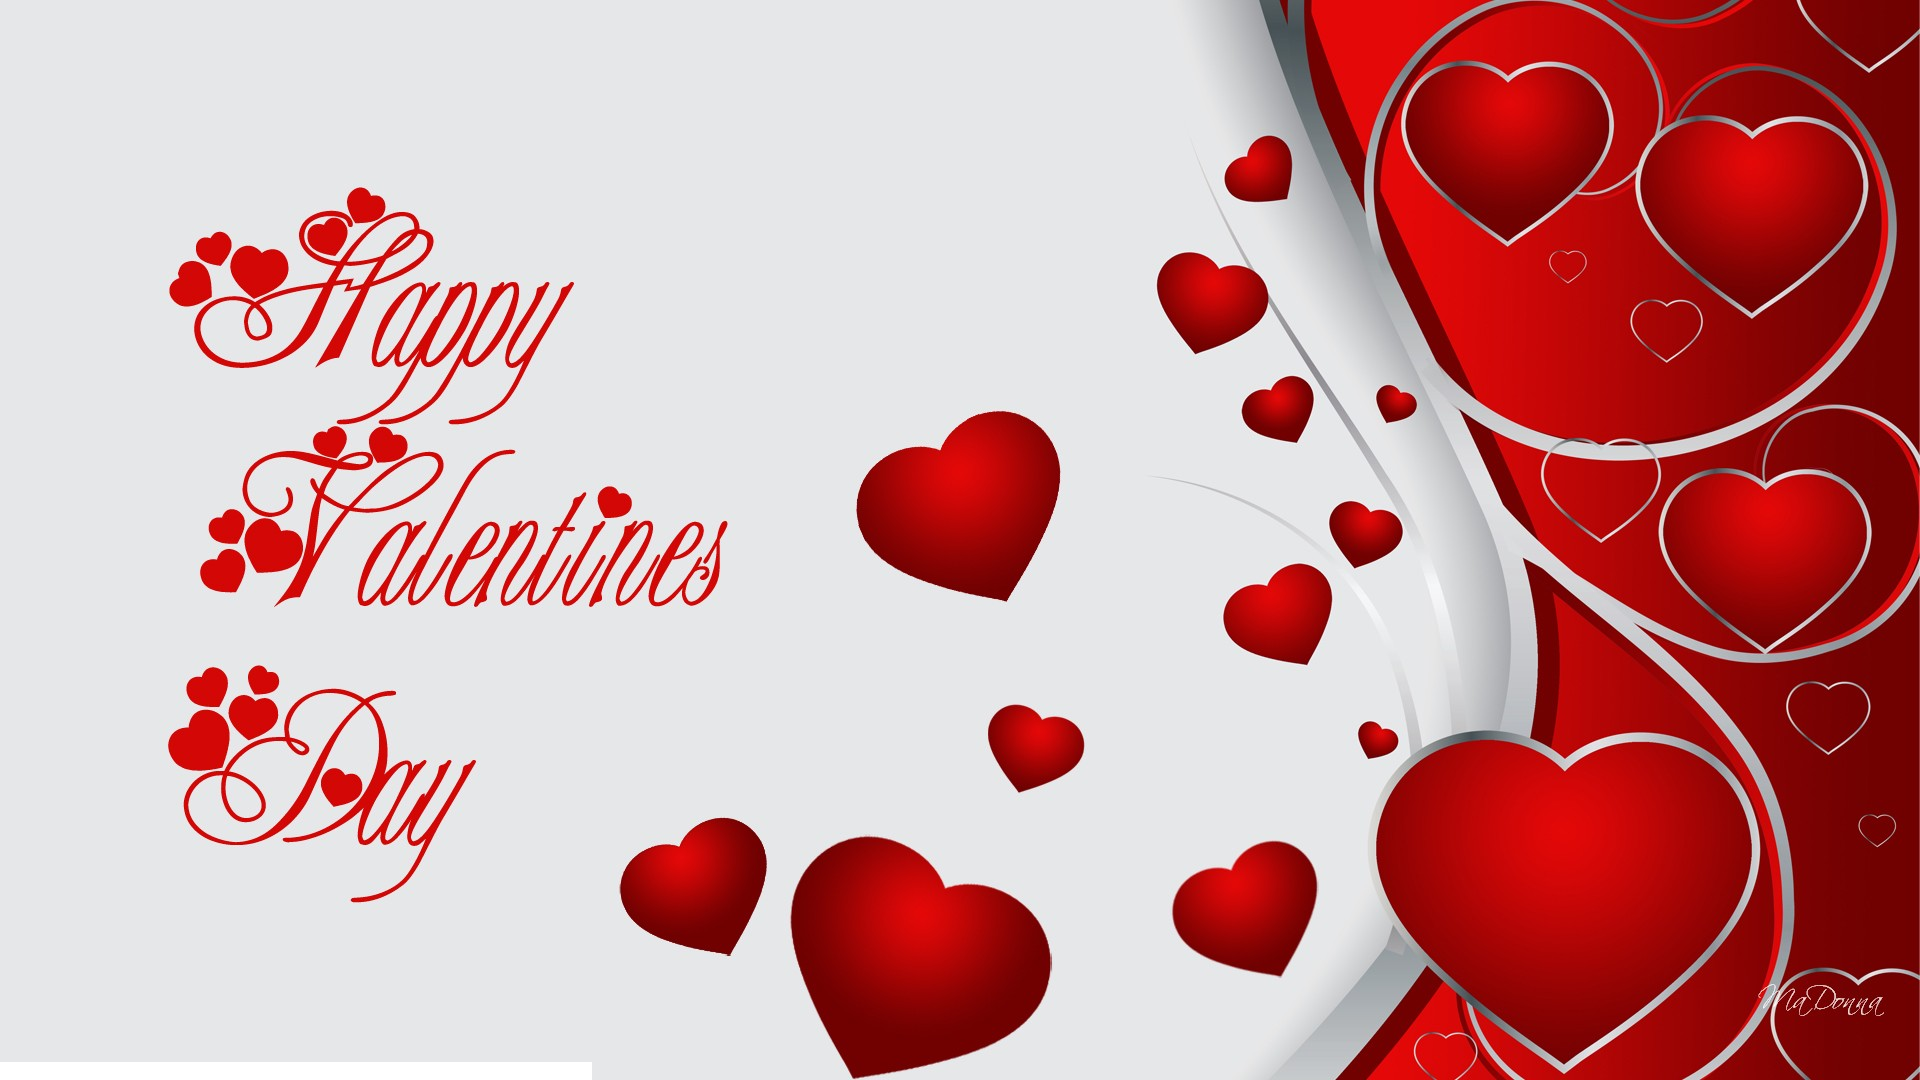 10 best] valentine's day pc wallpapers to make the mood romantic